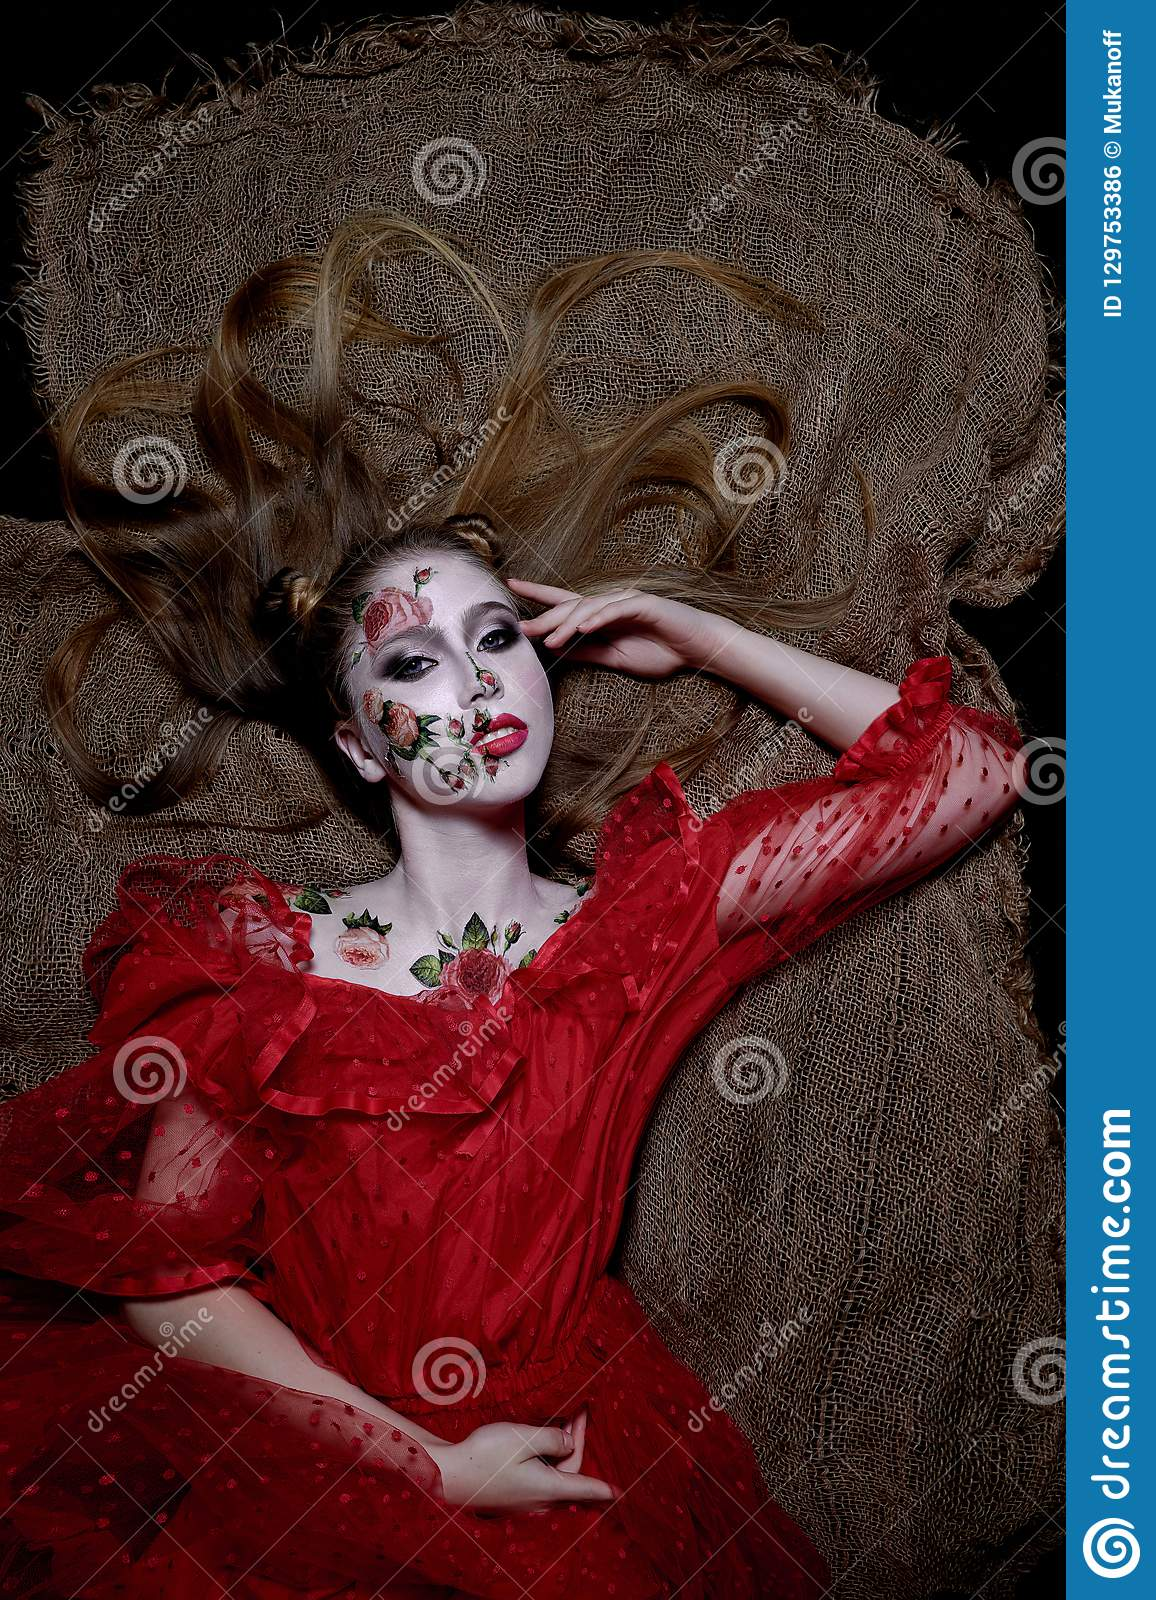 Creatyve Bodyart Red Rose On Girl Skin In Red Dress Stock Photo Image Of Mexico Beauty 129753386